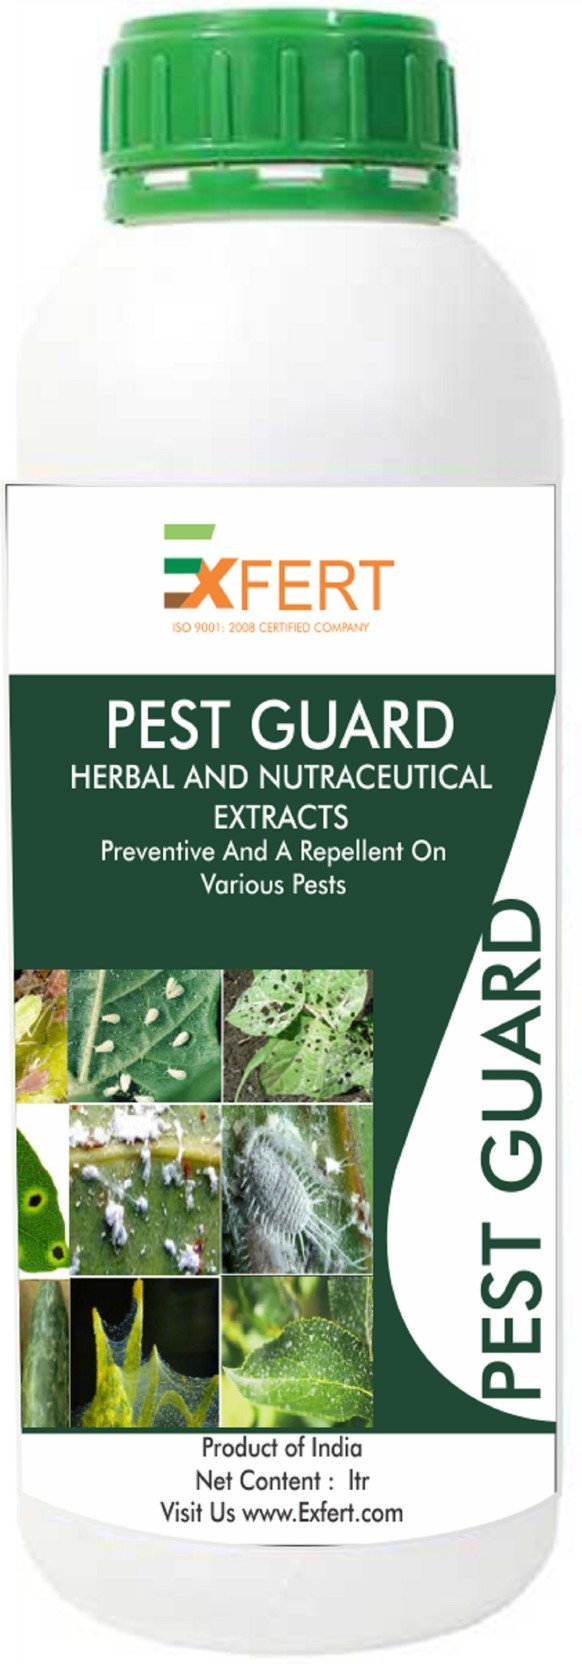 EXFERT CROPCARE Exfert PEST Guard 250ml Plants Pesticides Herbal and  Nutraceutical Extracts A Repellent On Various Pests and Insects Like Red  Mites,